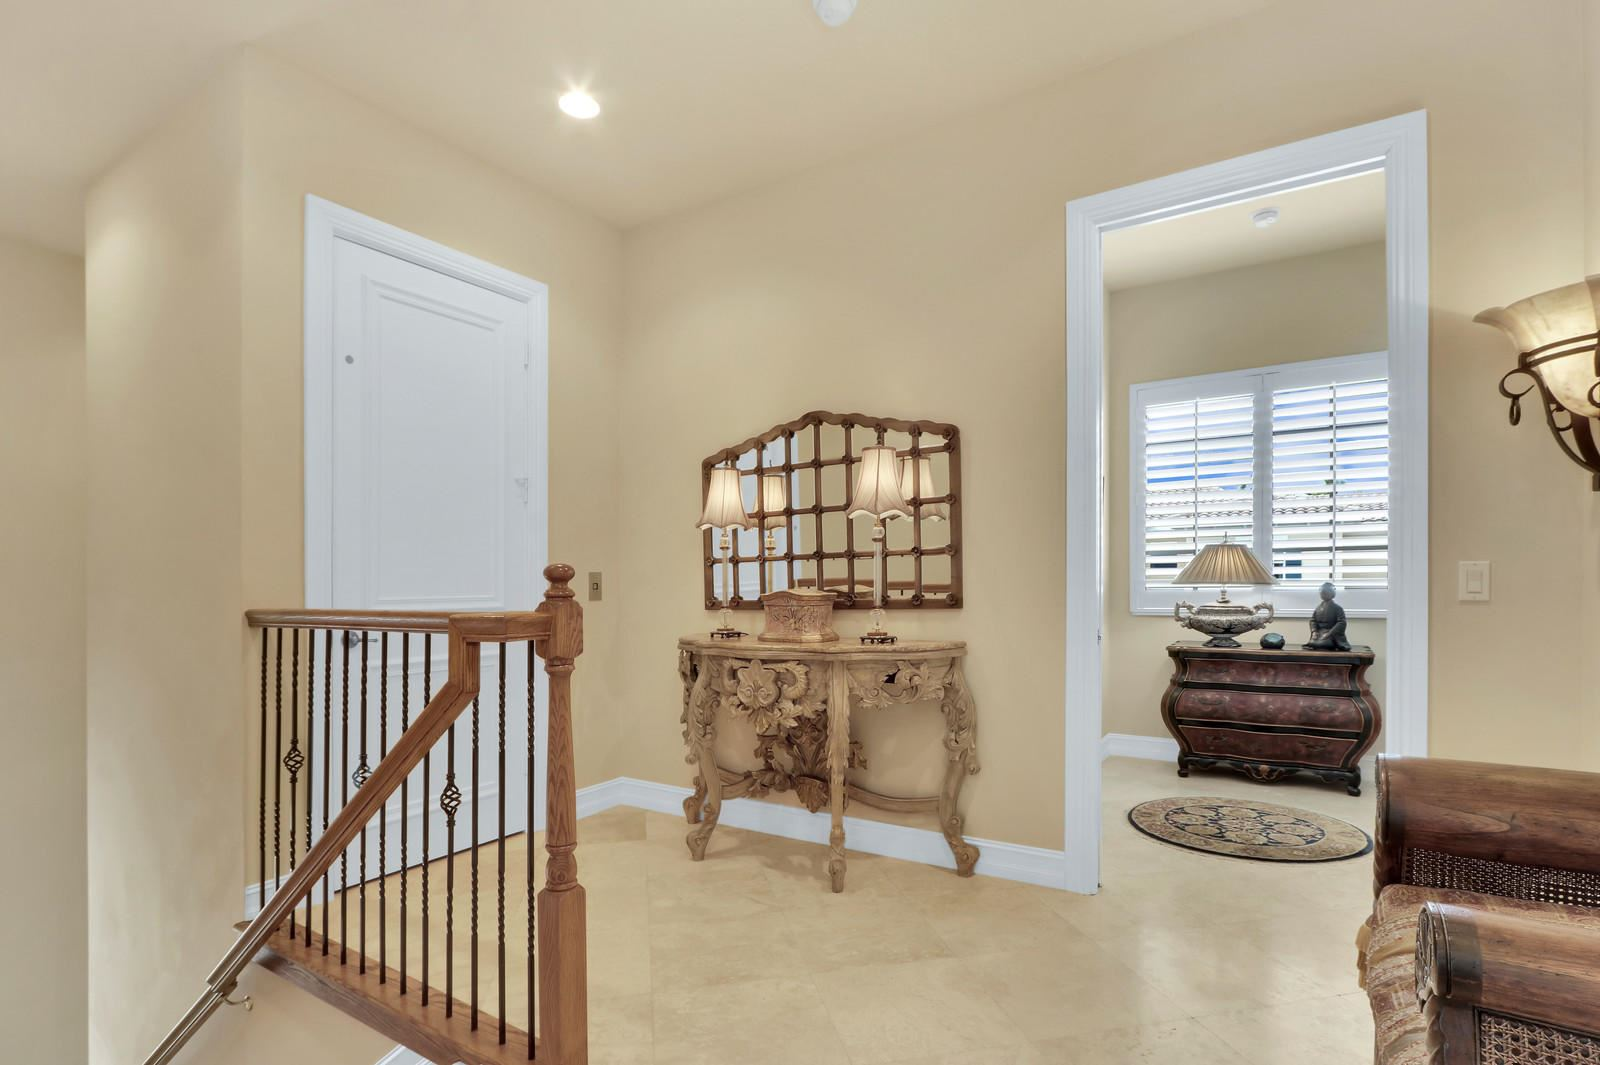 Photo of 104 Chambord Terrace #38 J, Palm Beach Gardens, FL 33410 (MLS # RX-10624769)